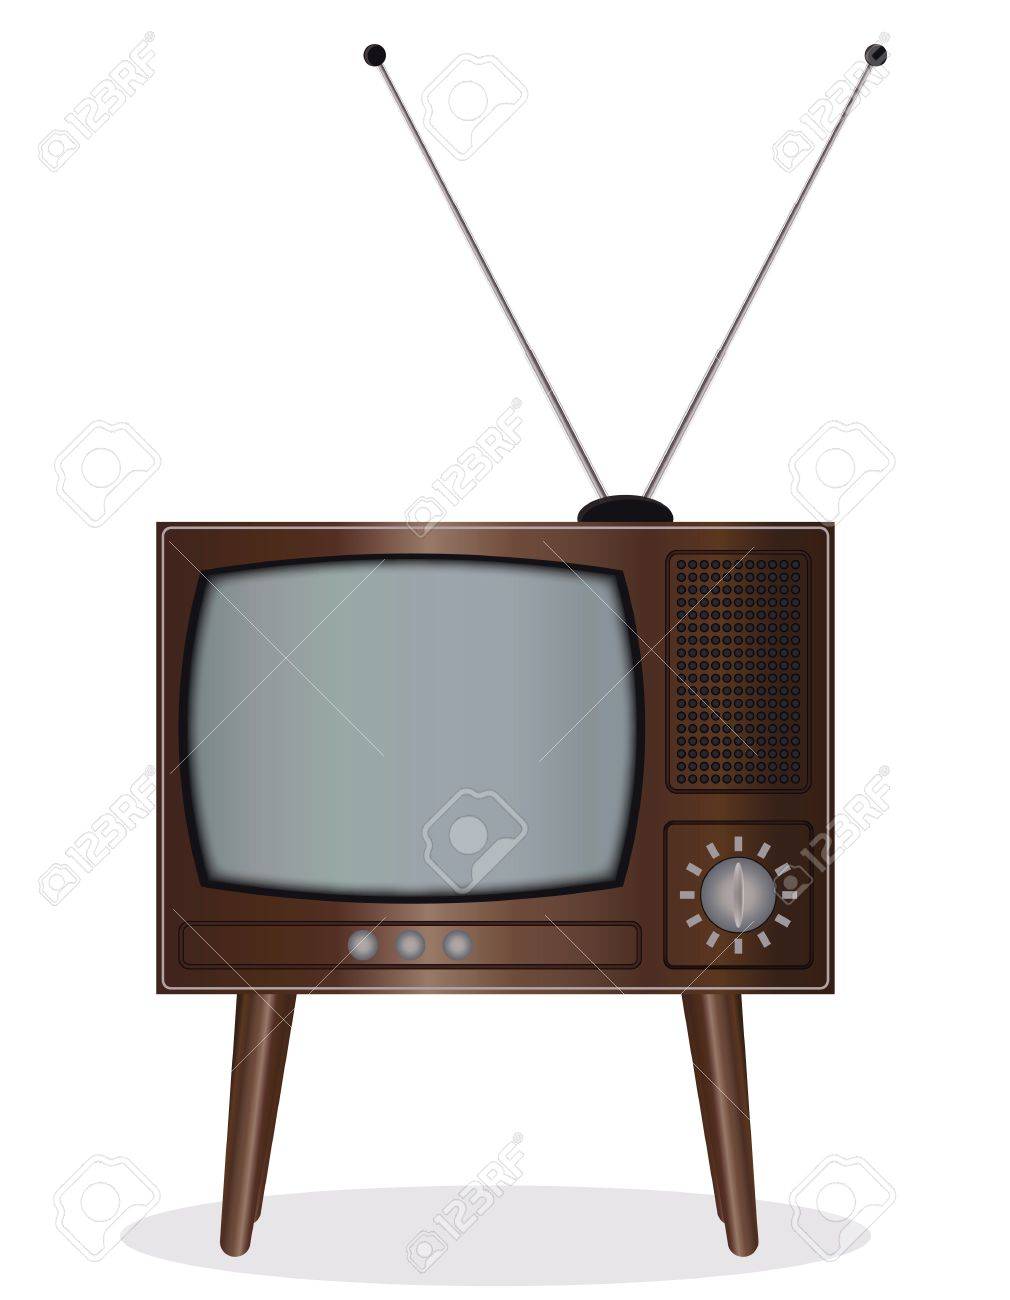 Old TV set - an illustration for your design project. Stock Vector - 7063859